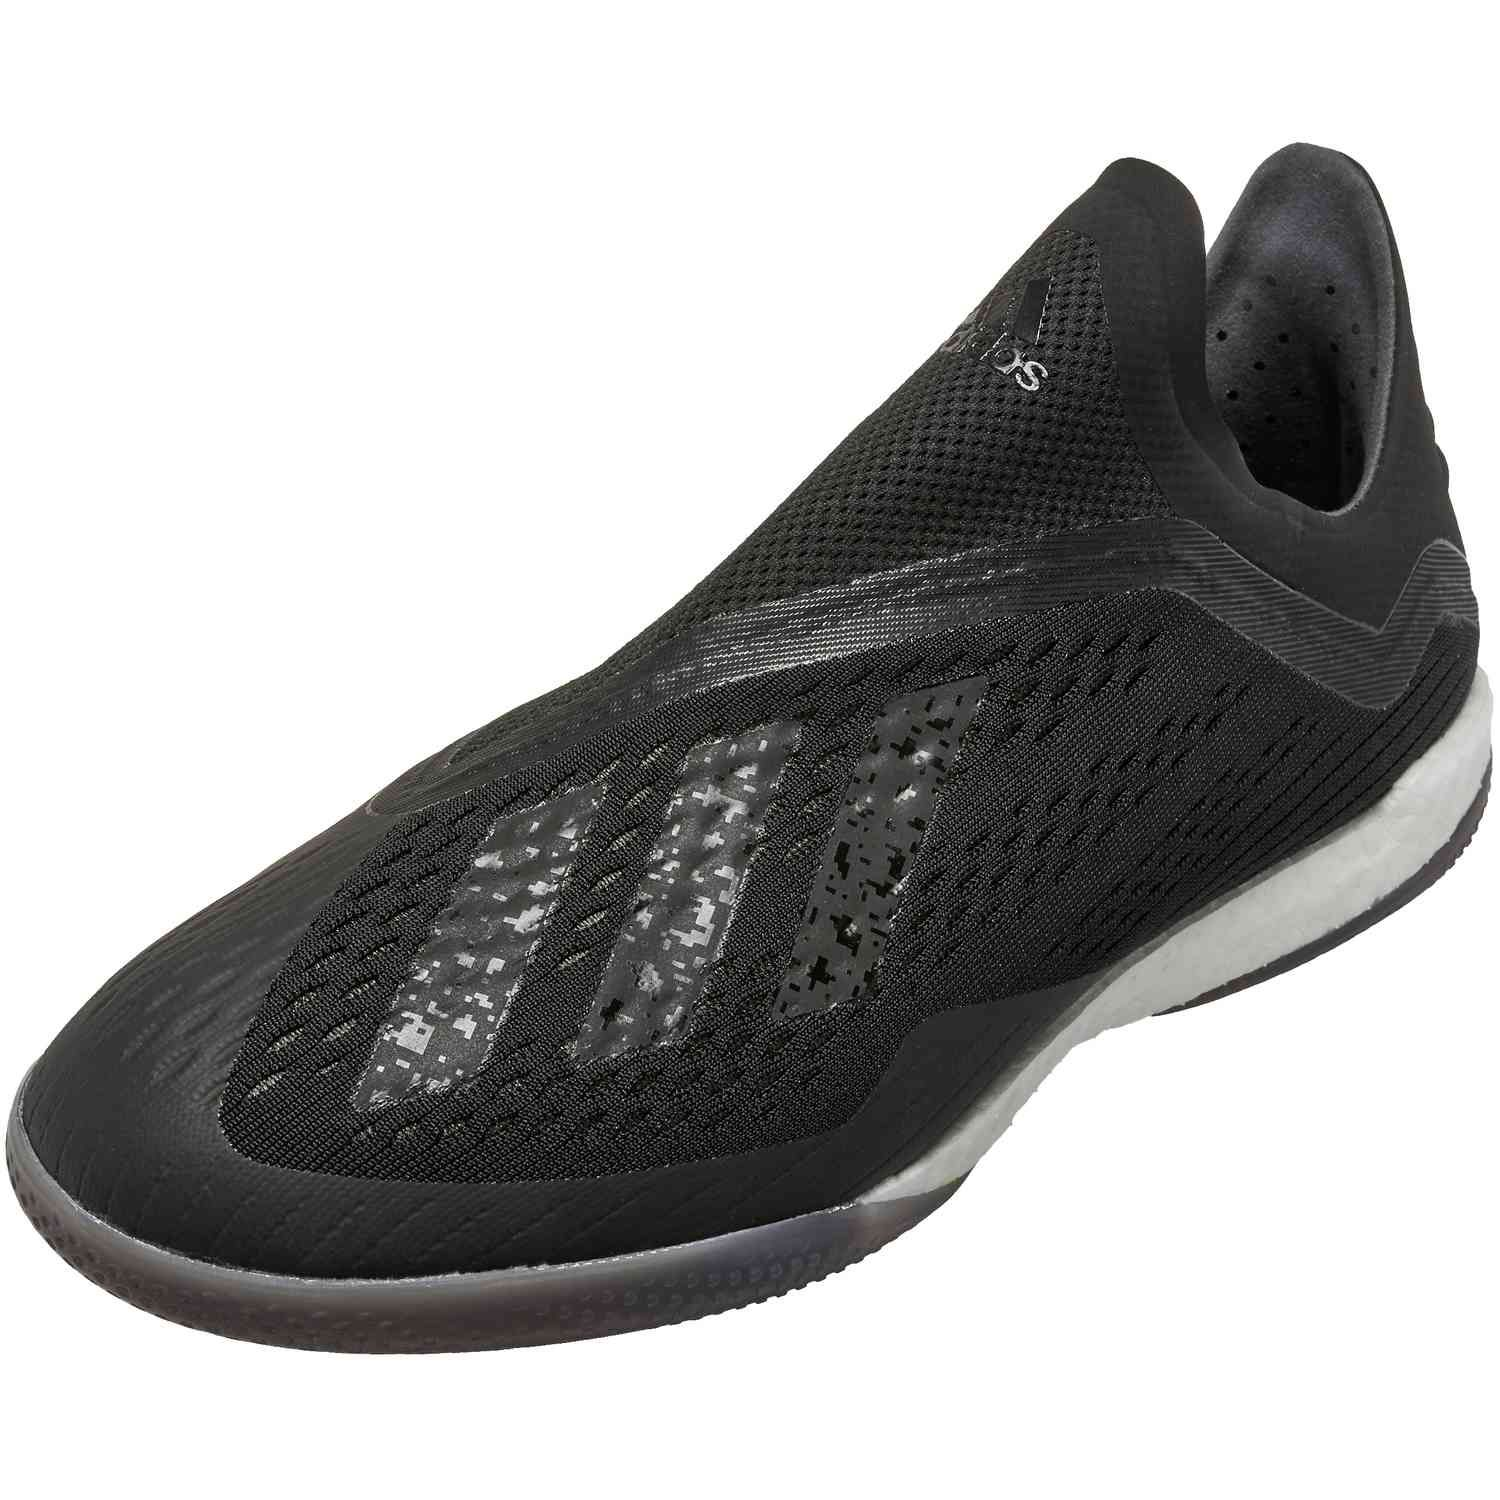 Shadow Mode adidas X Tango indoor soccer shoes. Get them at SoccerPro today! 36be2f89da3